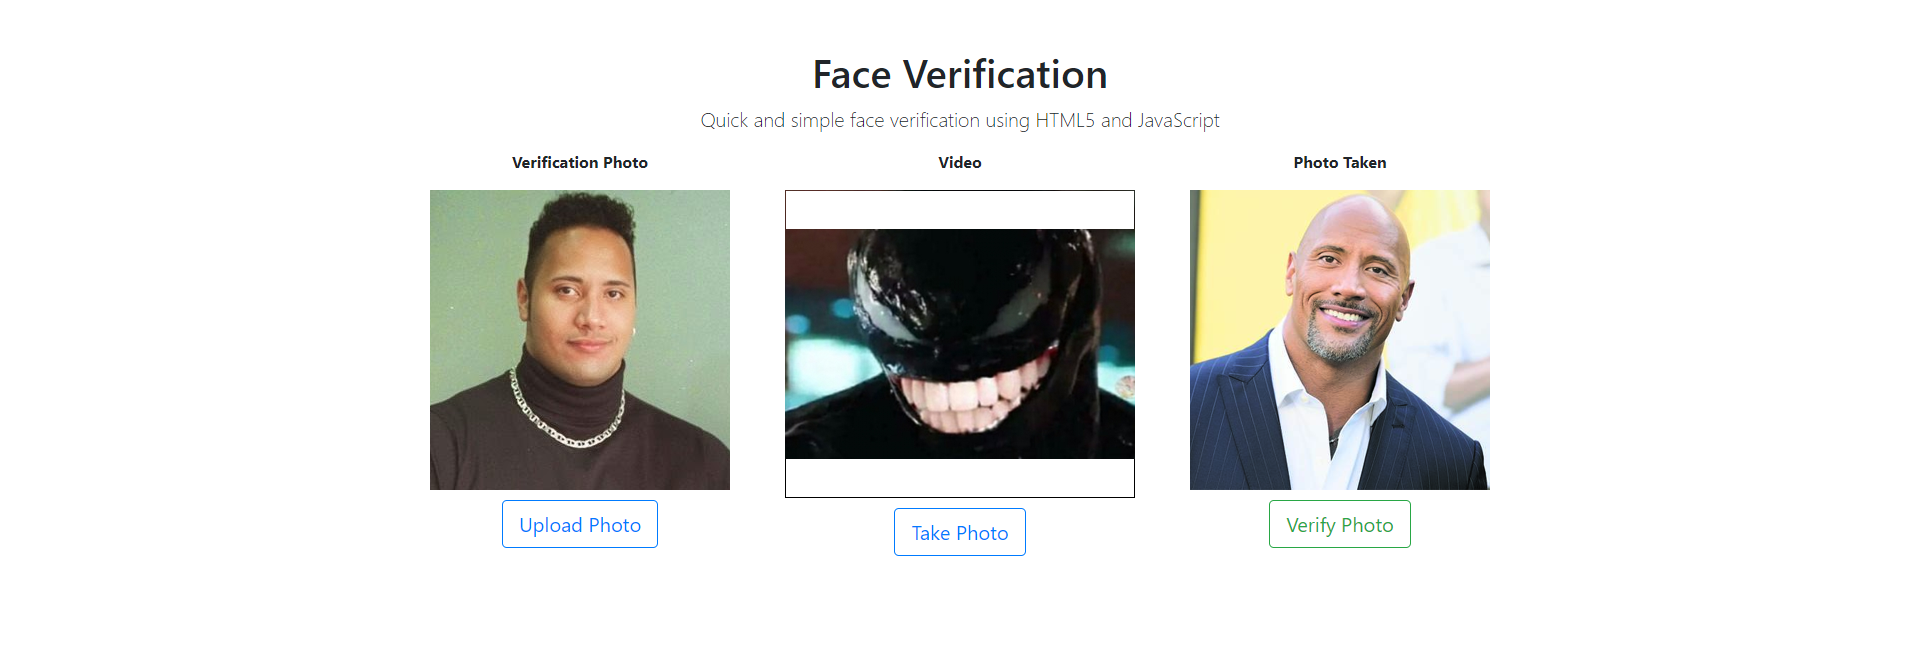 How to set up face verification the easy way using HTML5 +